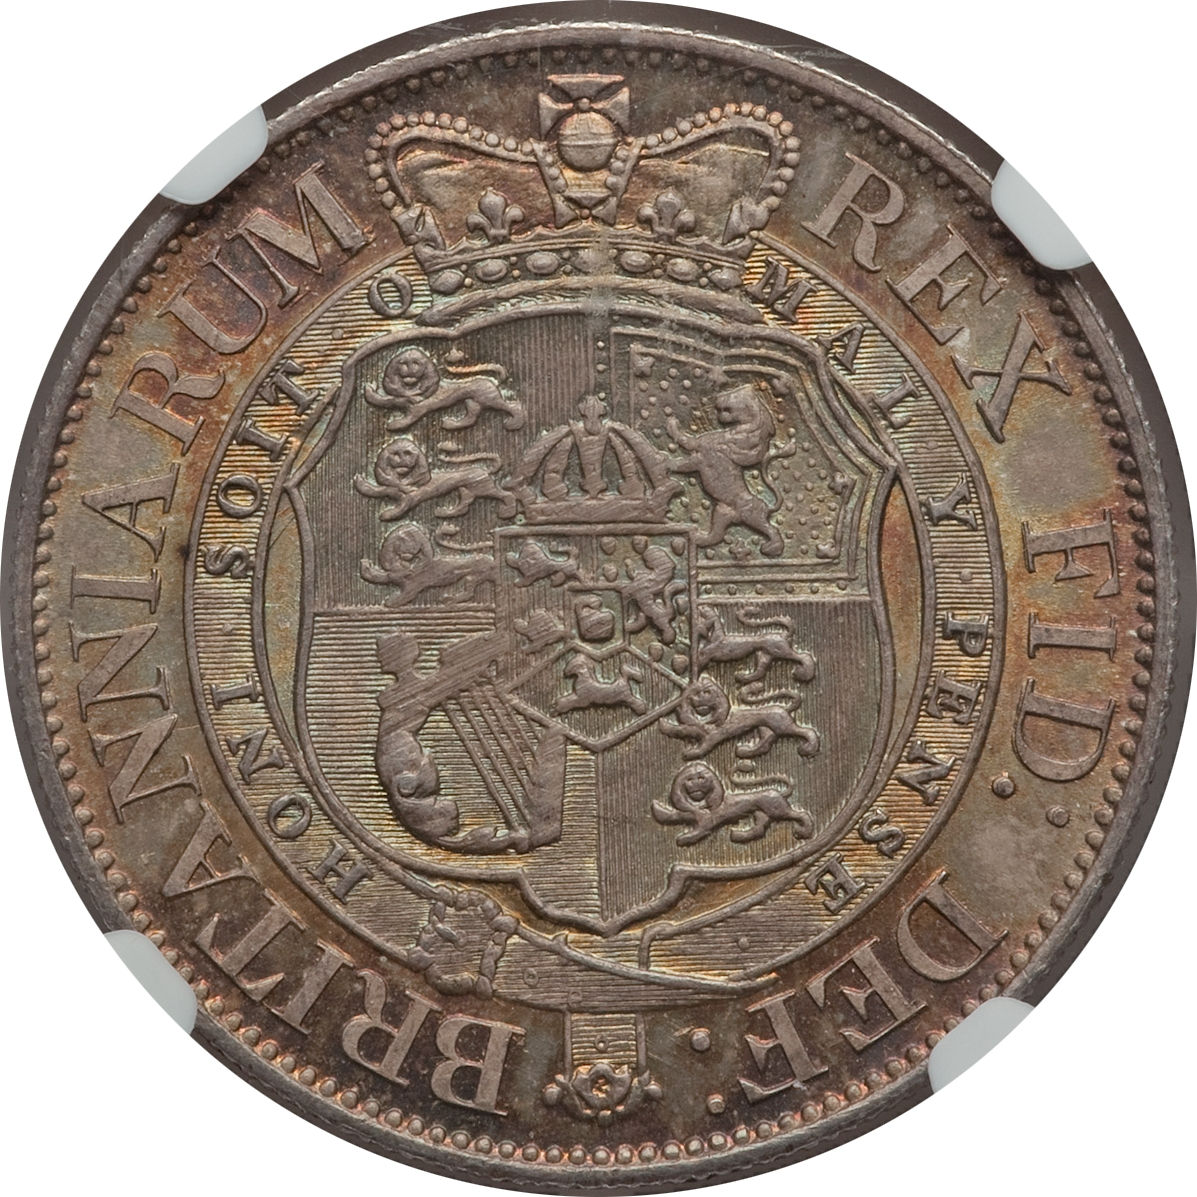 Halfcrown 1817 Small Head: Photo Great Britain 1817 1/2 crown KM-672